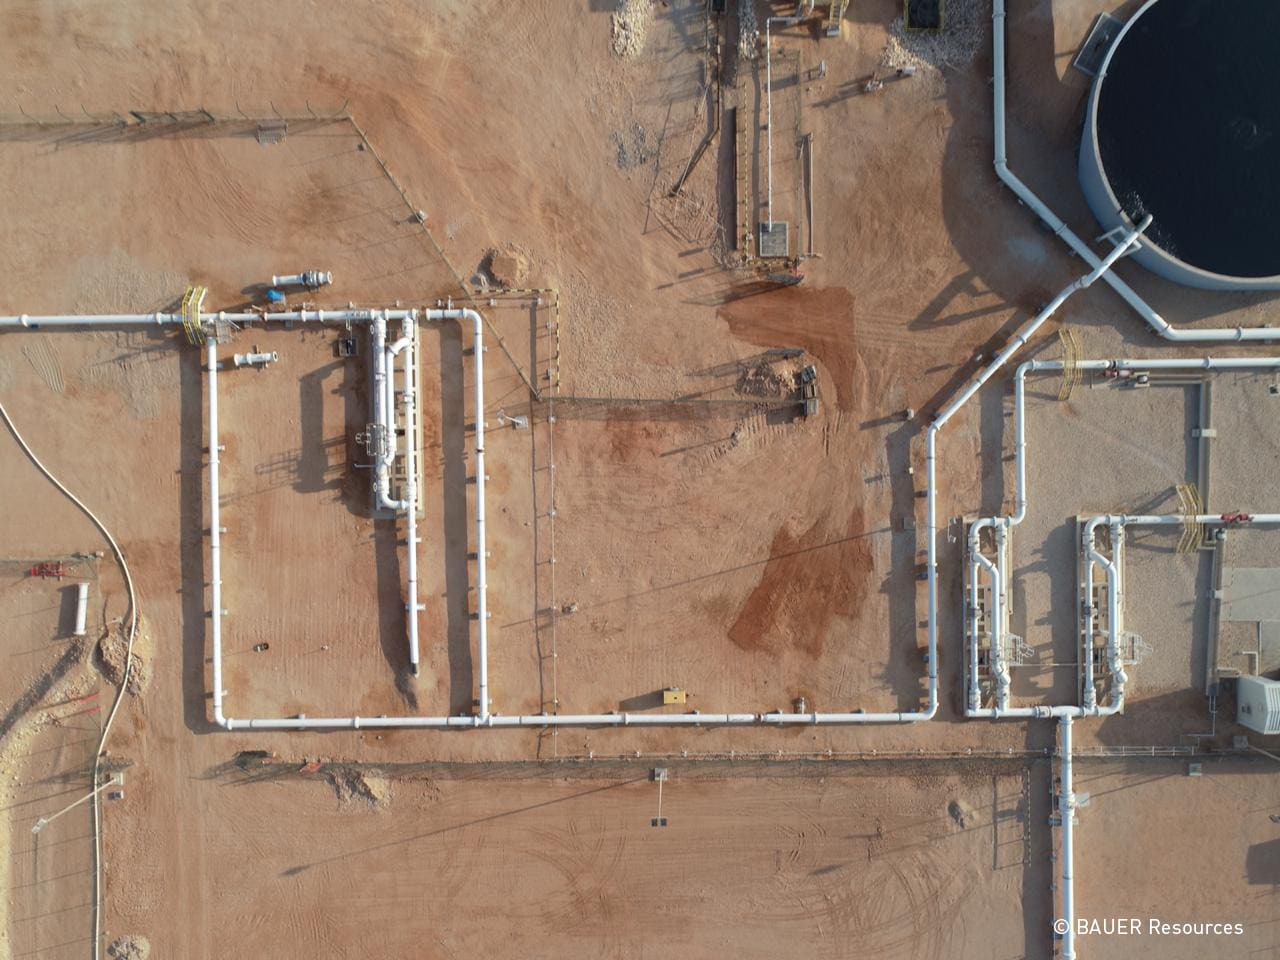 Wastewater treatment plant with water skids from above